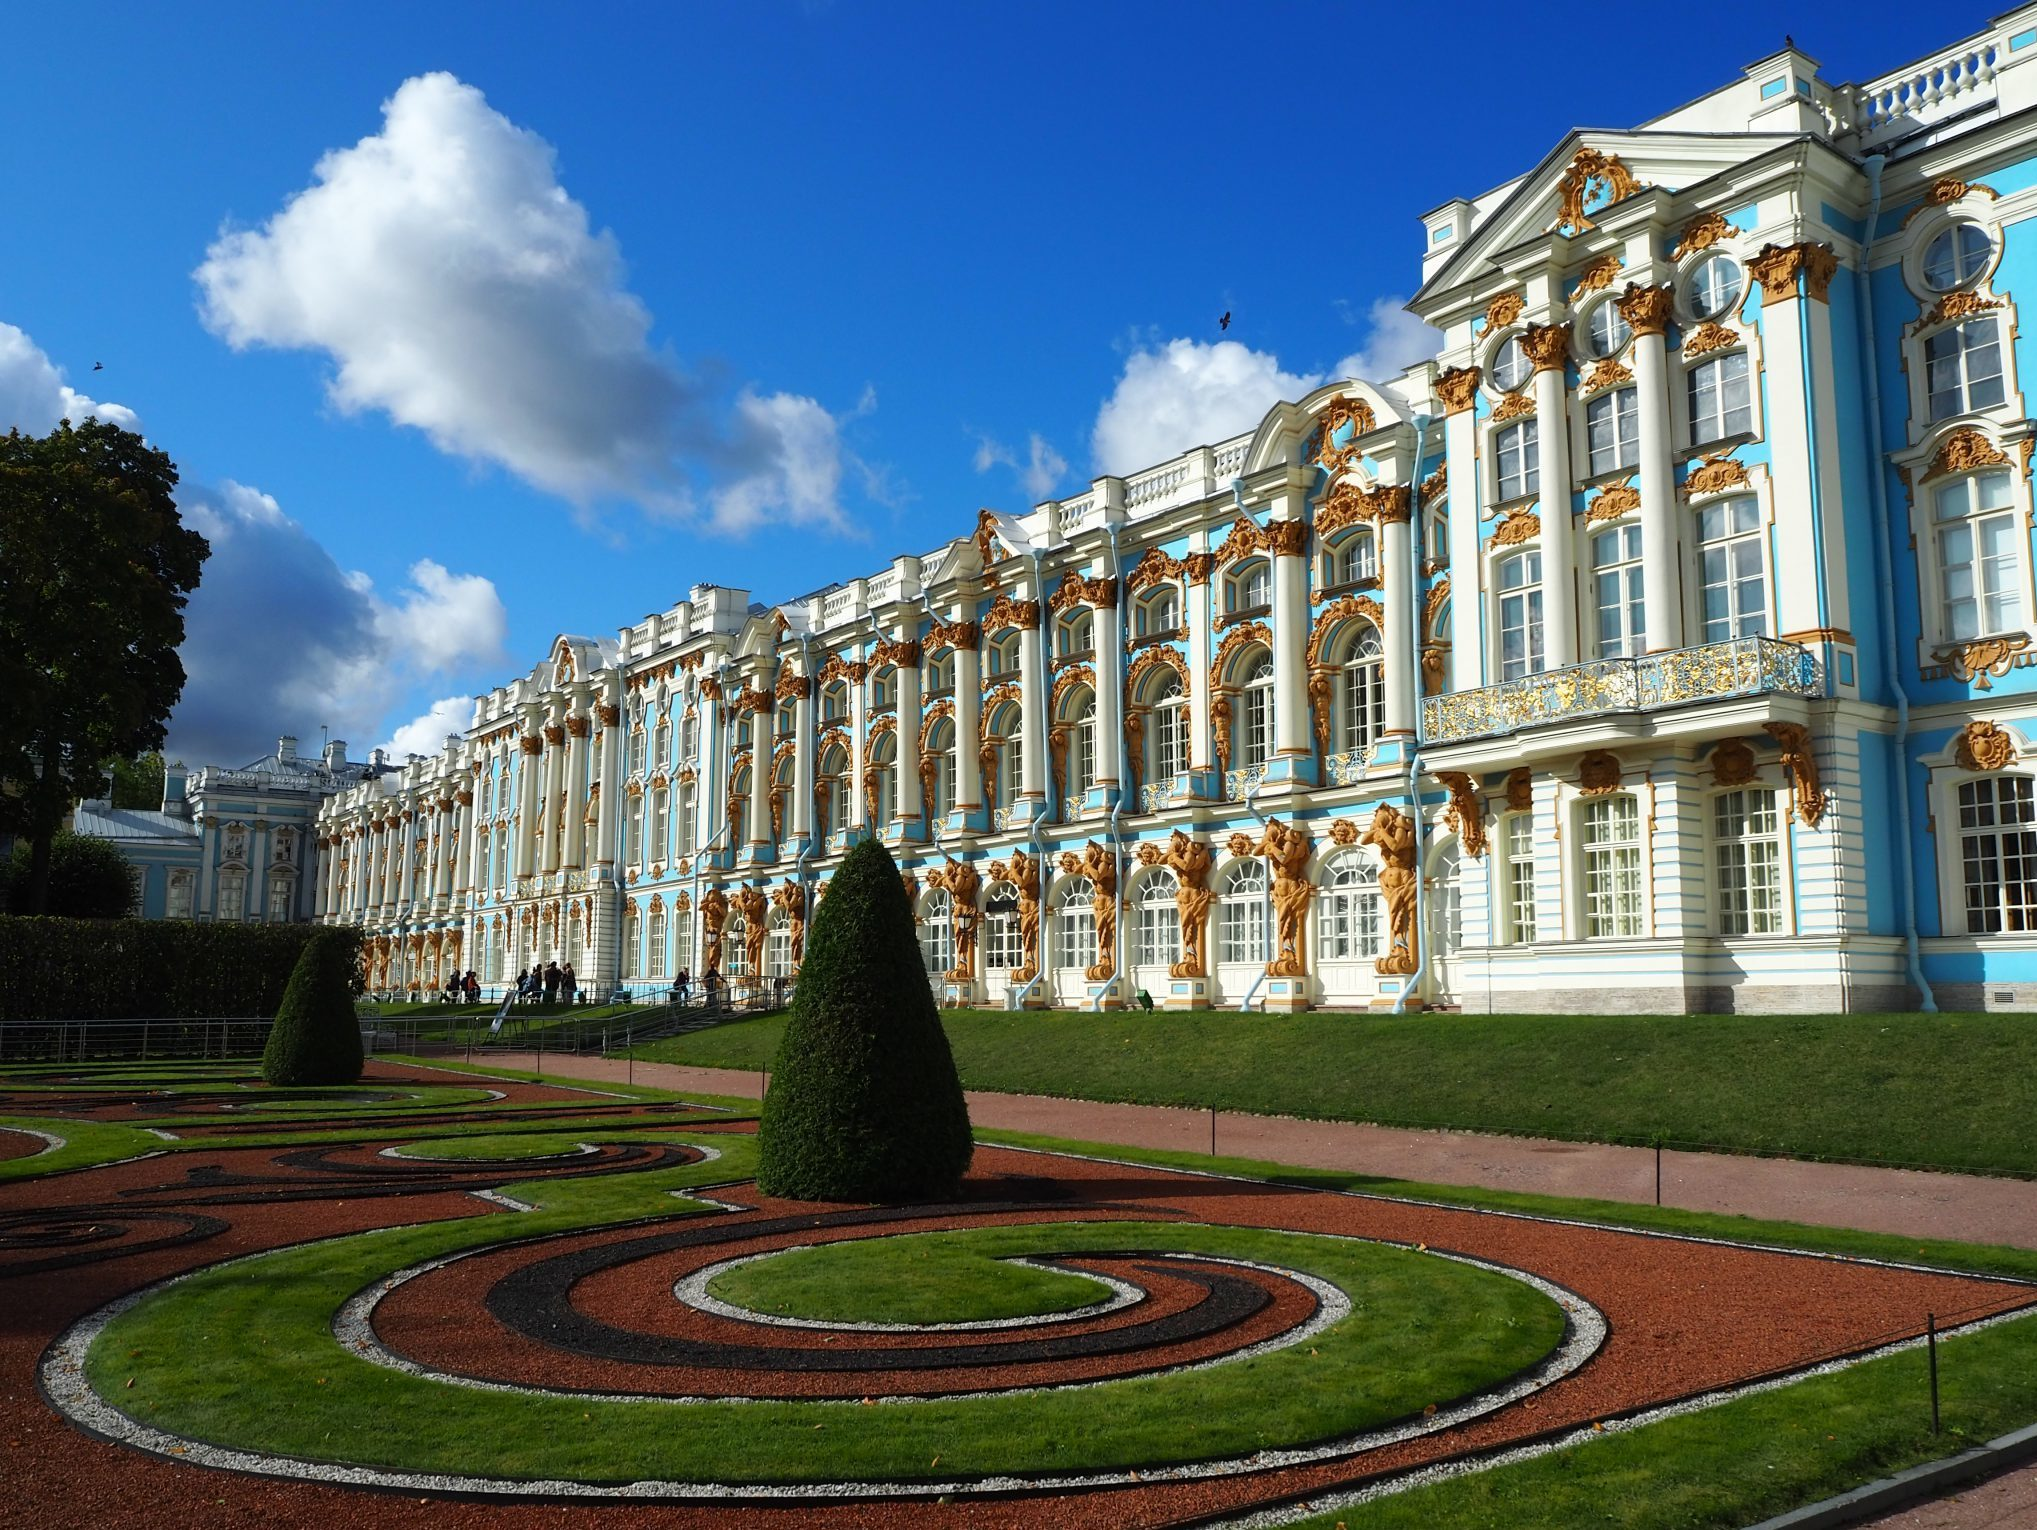 a large building with Catherine Palace in the background